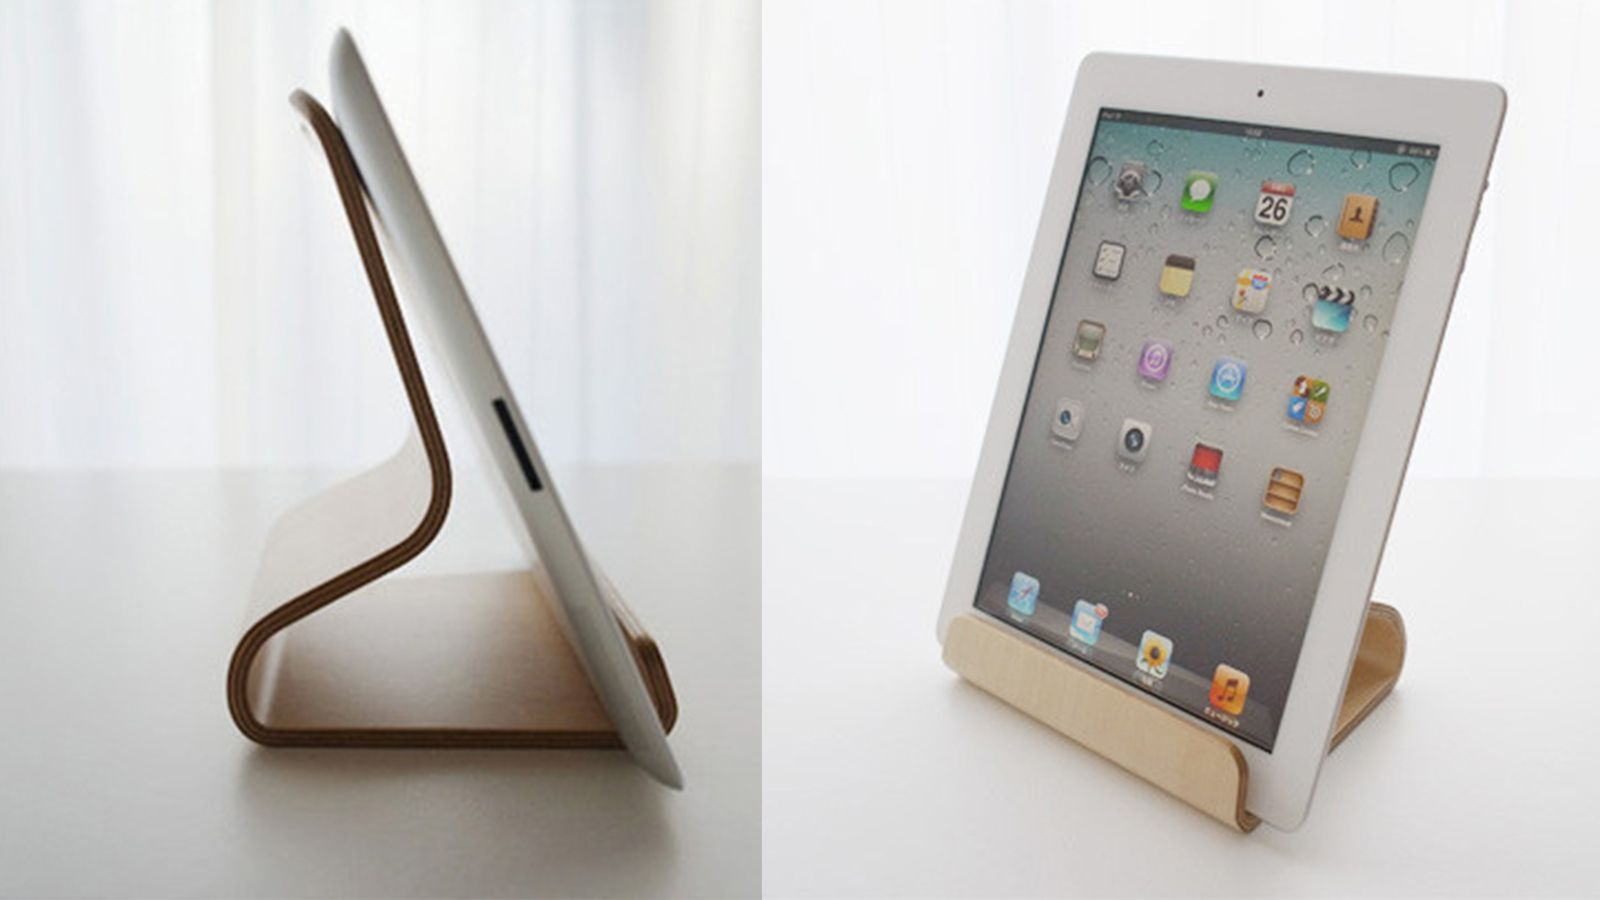 It May Be Called The U0027Desktop Chair,u0027 But This IPad Stand Would Look Great  In A Kitchen For All The Pinterest Recipes:)